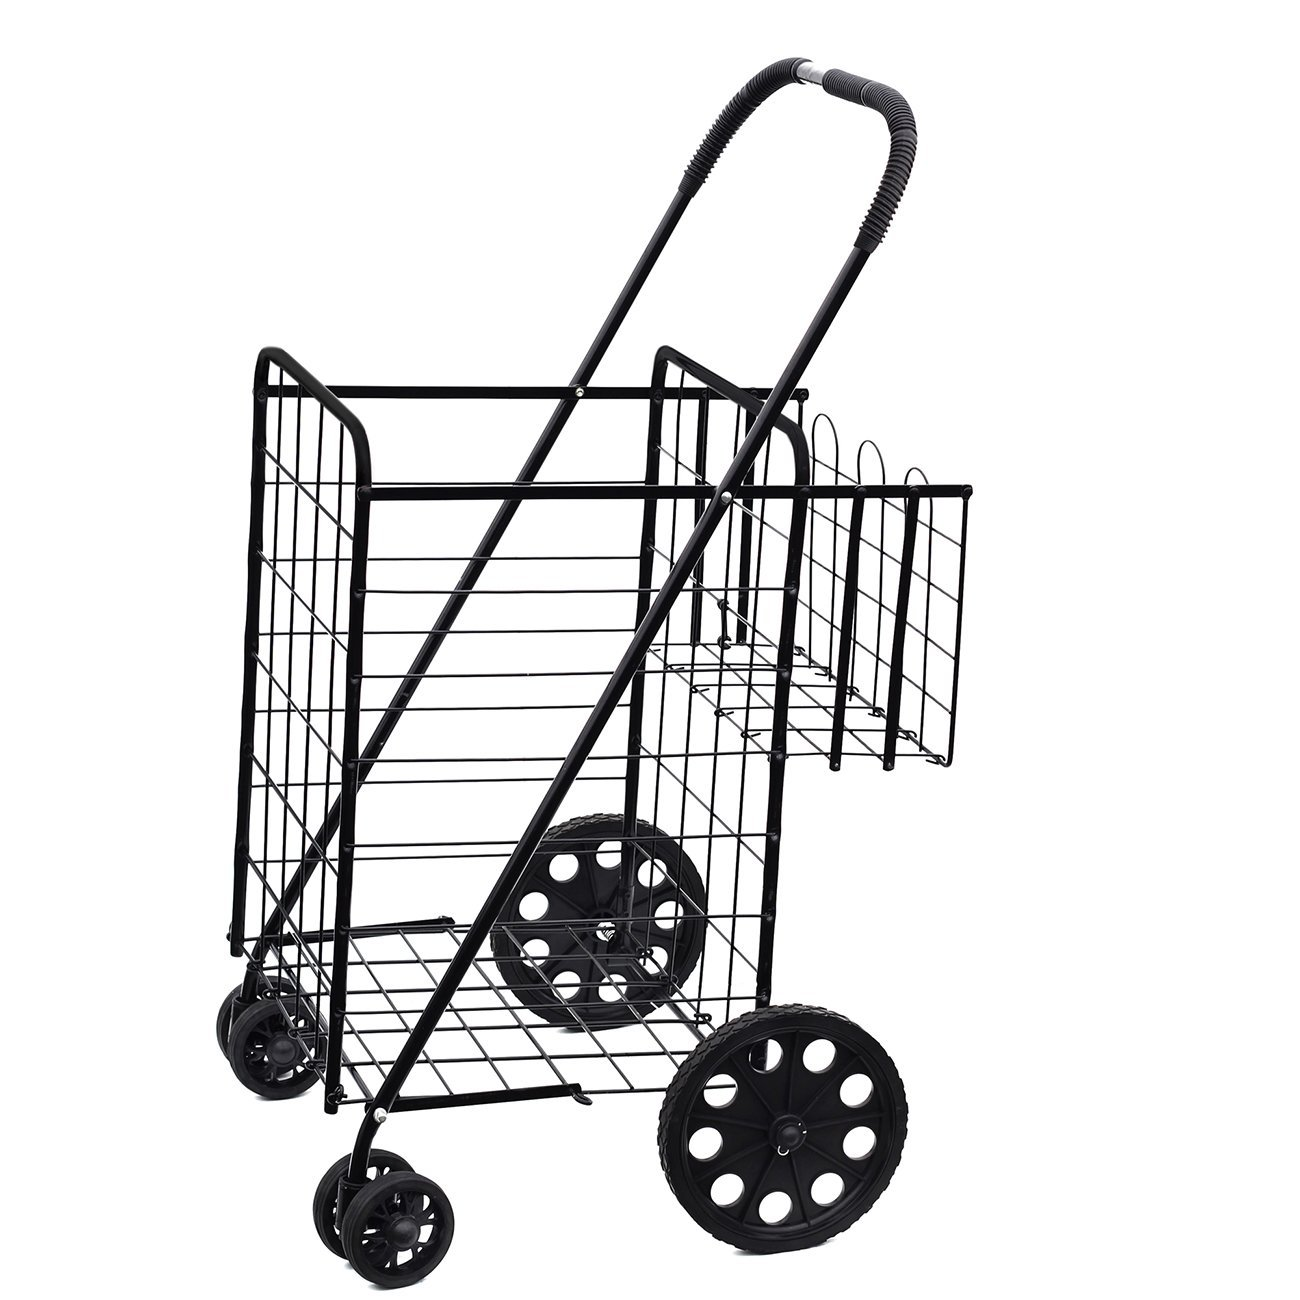 Grocery Cart Drawing at GetDrawings.com | Free for personal use ...